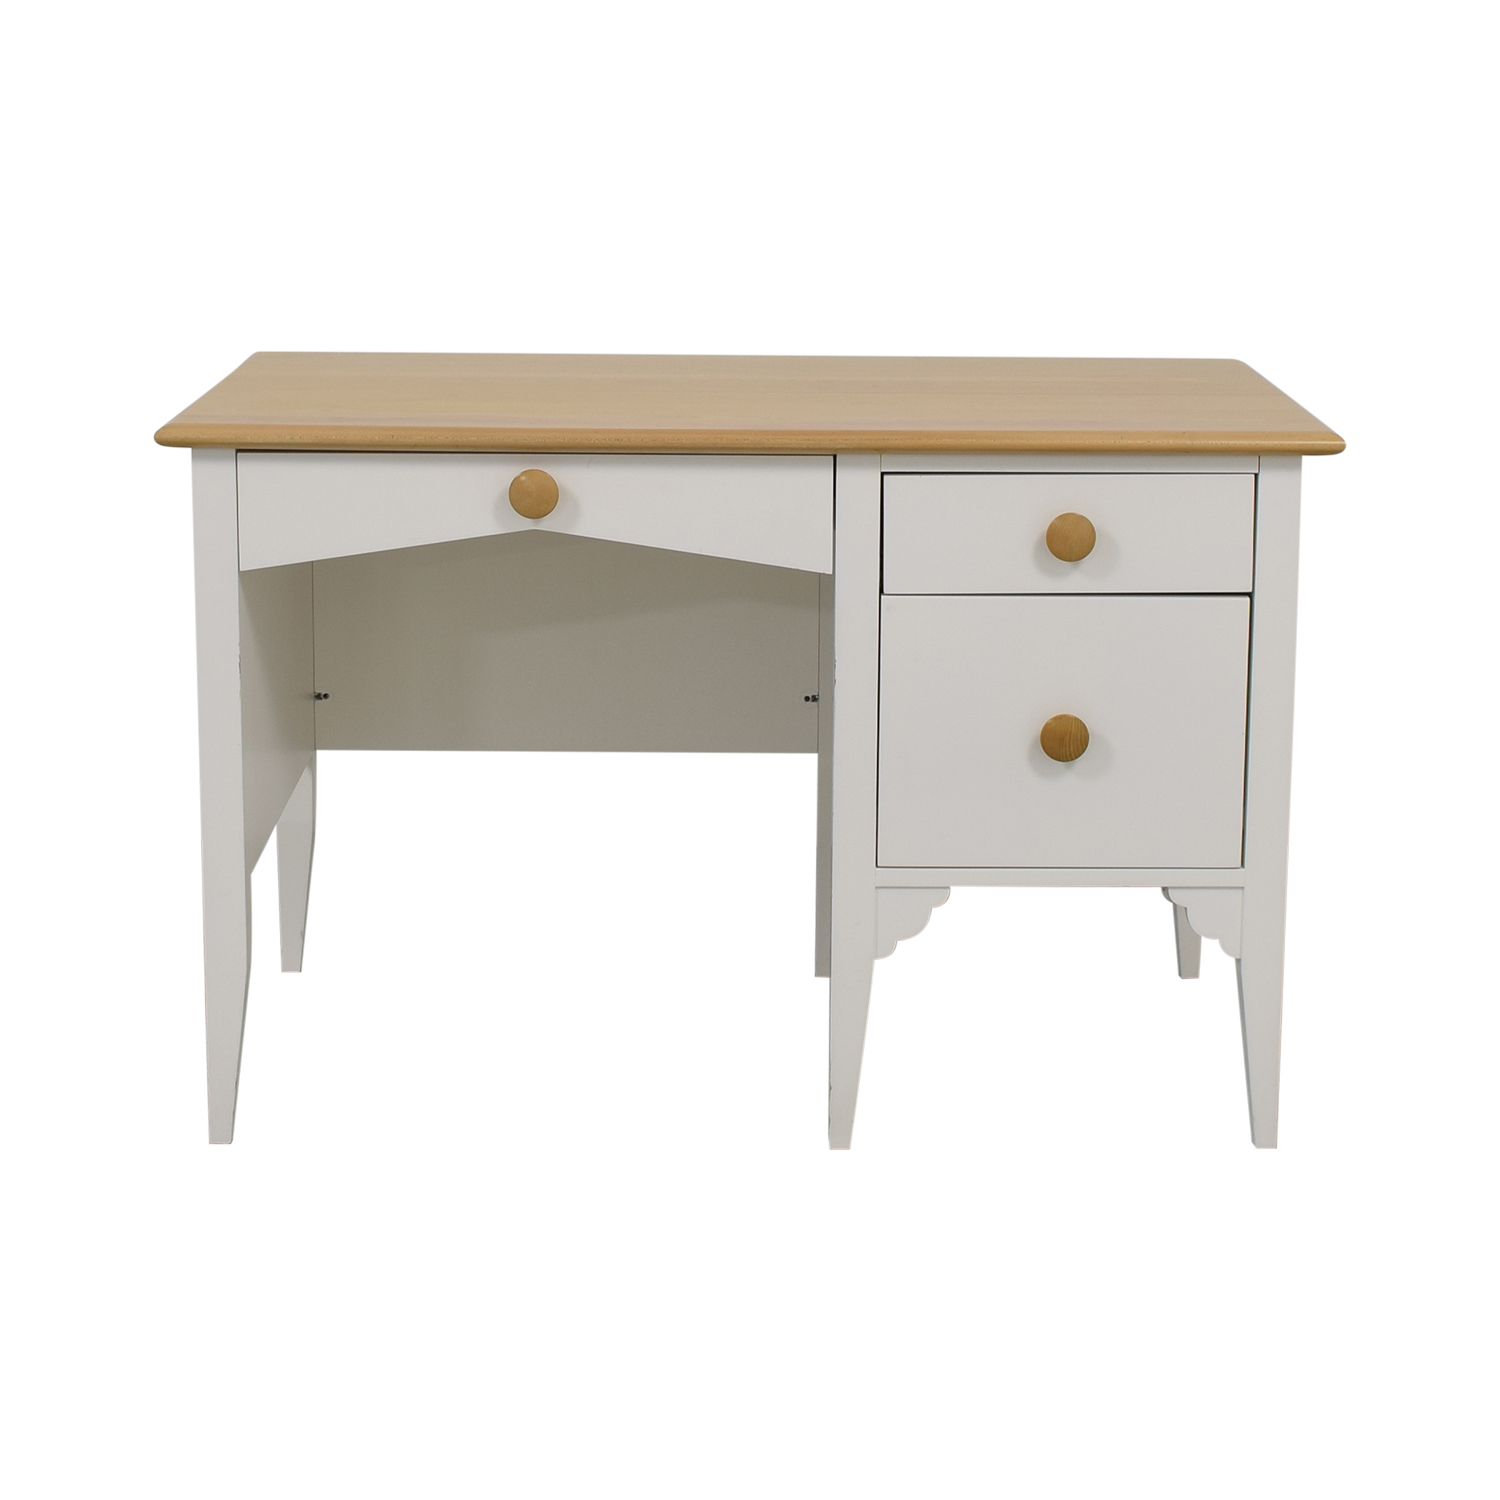 Maine Cottage Maine Cottage Little Cay Desk Tables